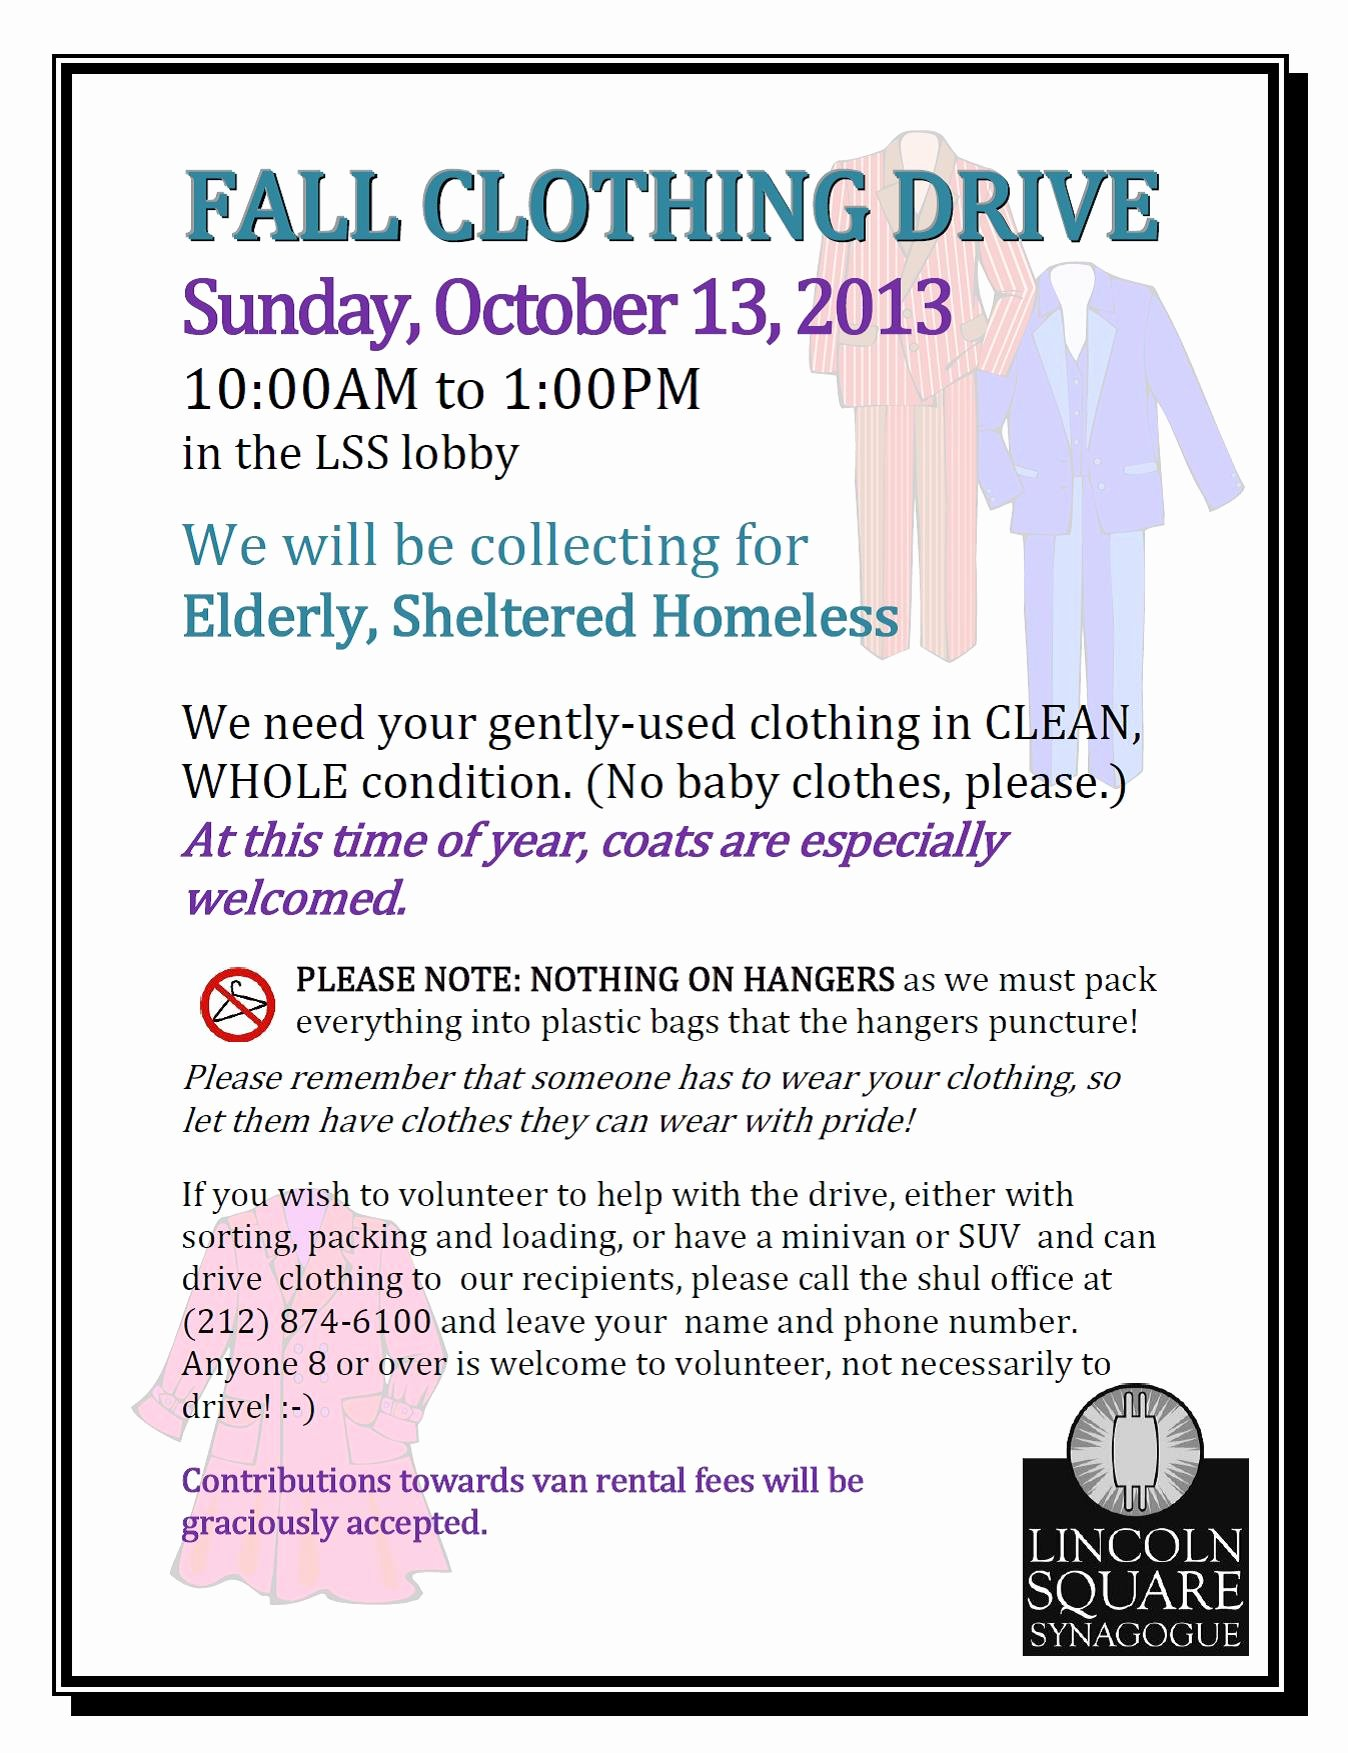 Clothing Drive Flyer Template Unique Fall Clothing Drive event Lincoln Square Synagogue